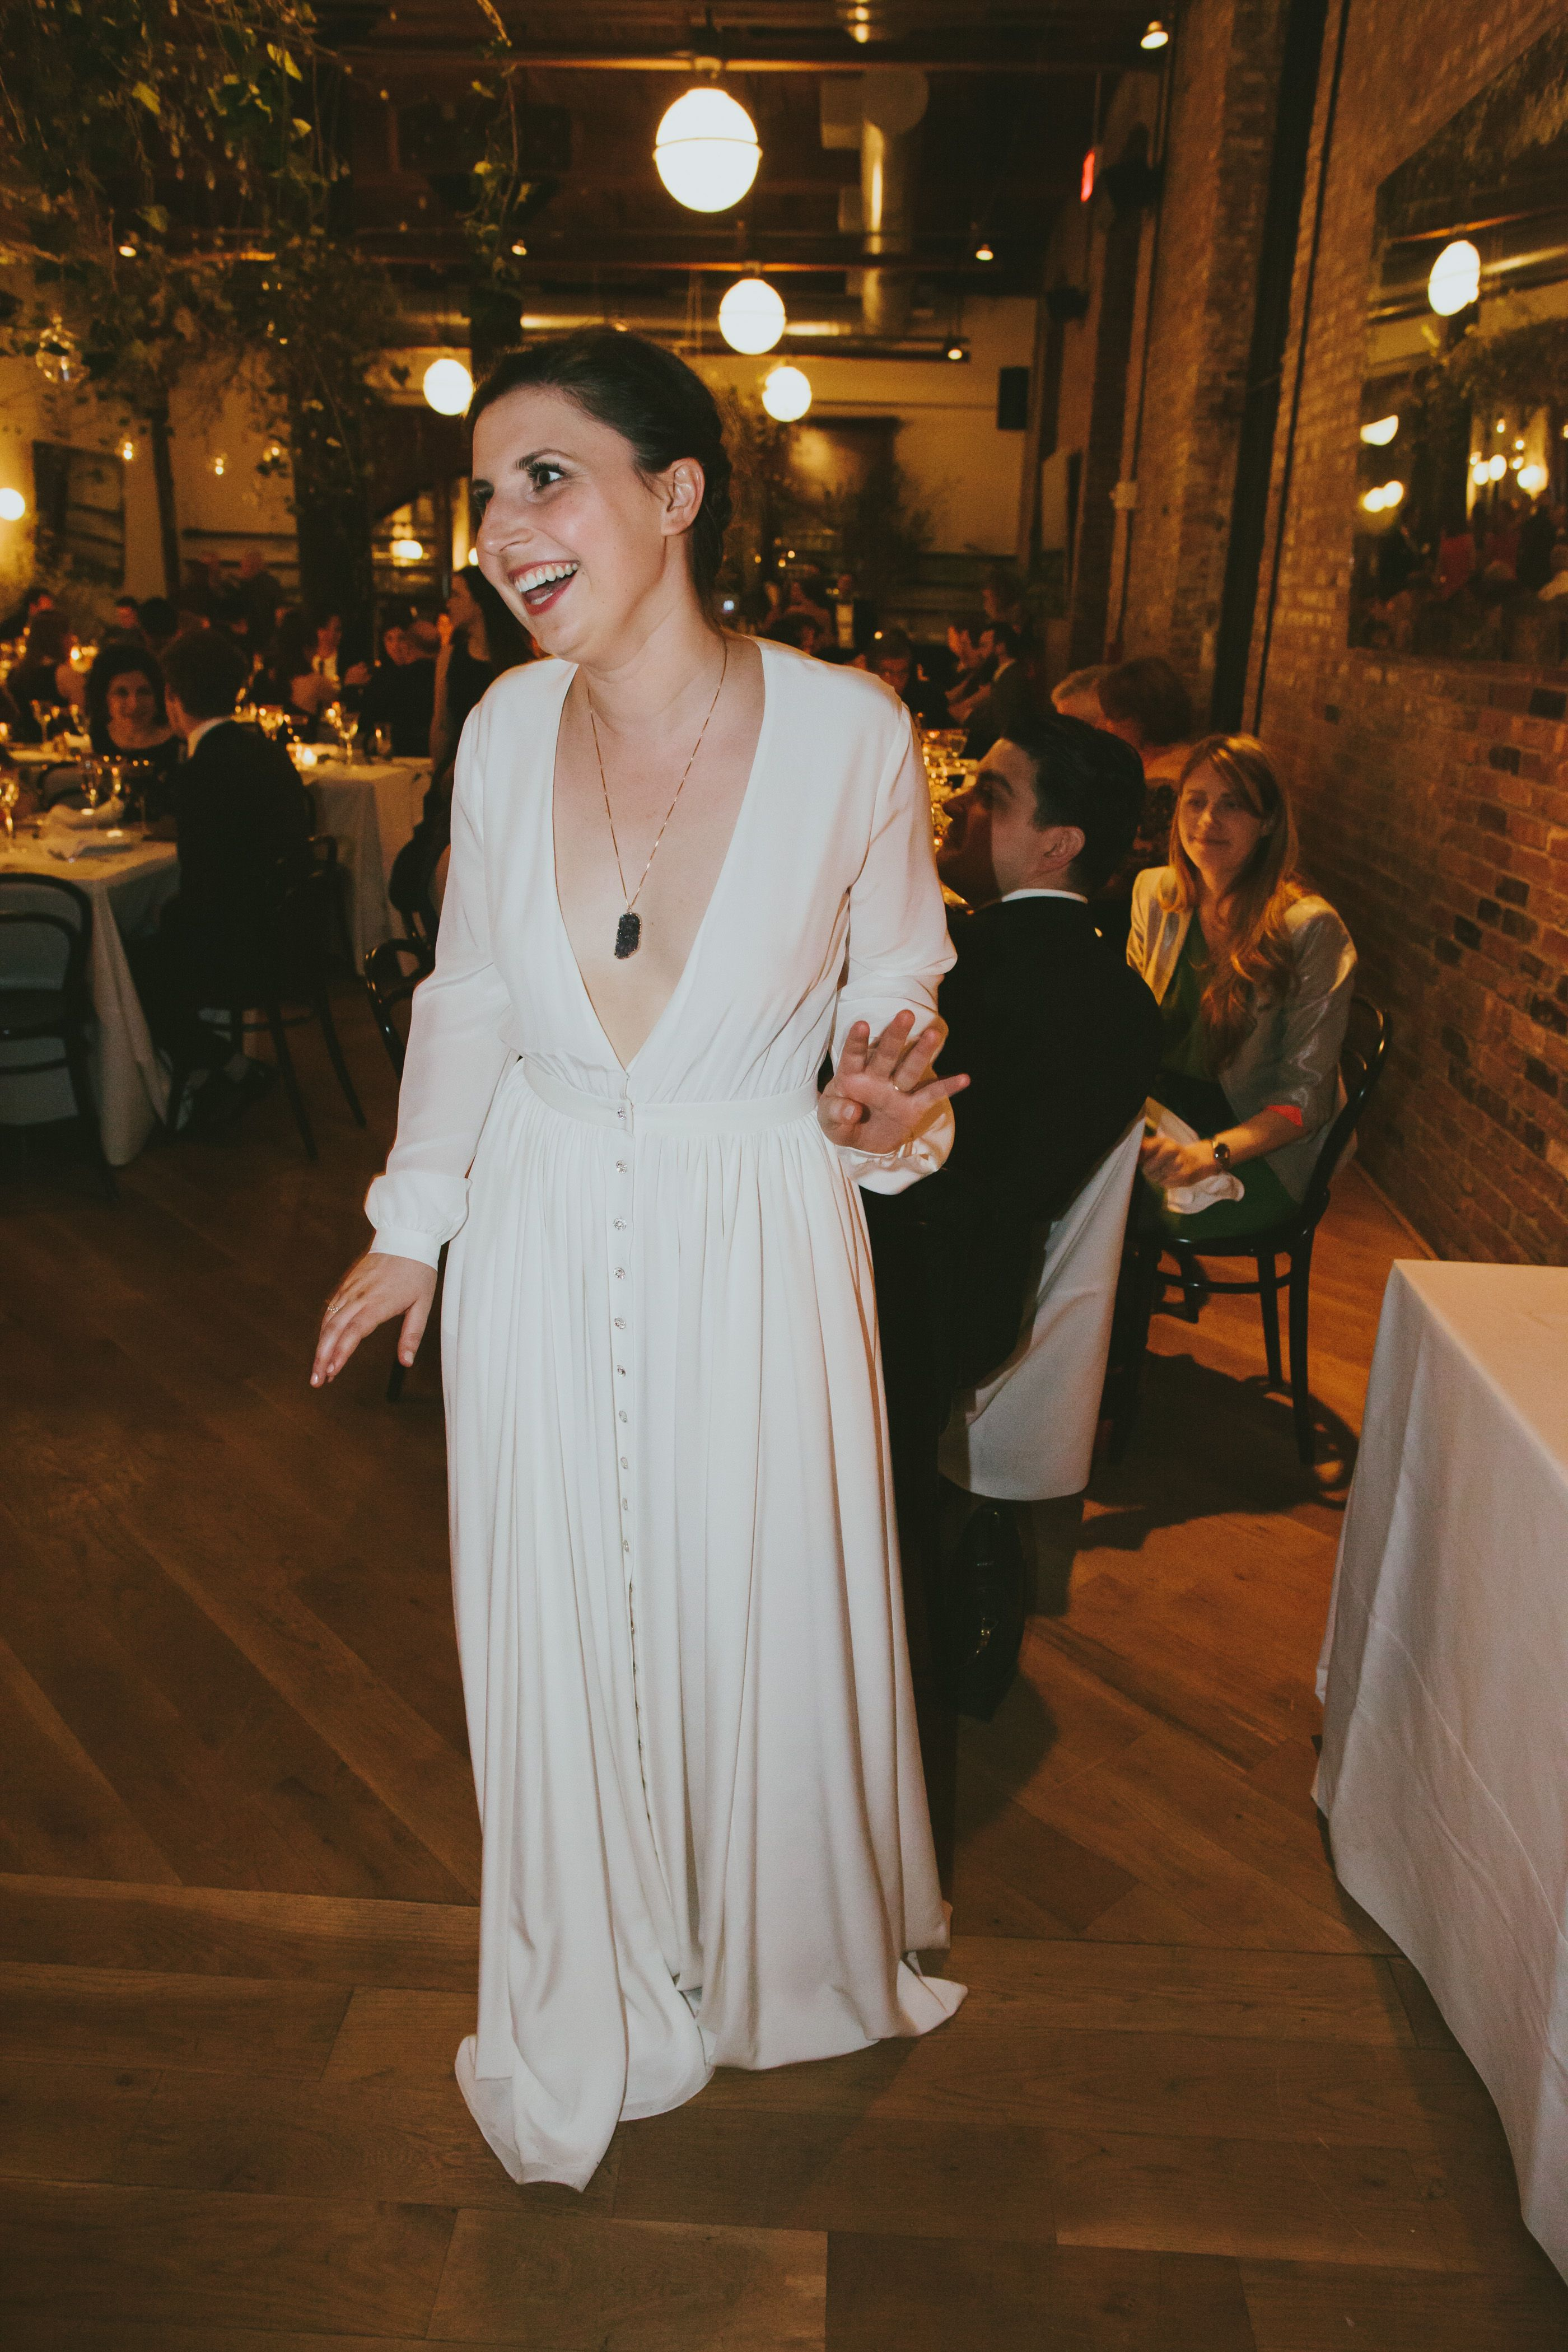 A Real Houghton Bride In Her Deep V Neck Galina Gown With Long Sleeves And Swarovski Buttons Visit The Nyc Houg Houghton Bride Nyc Boutiques Wedding Dresses